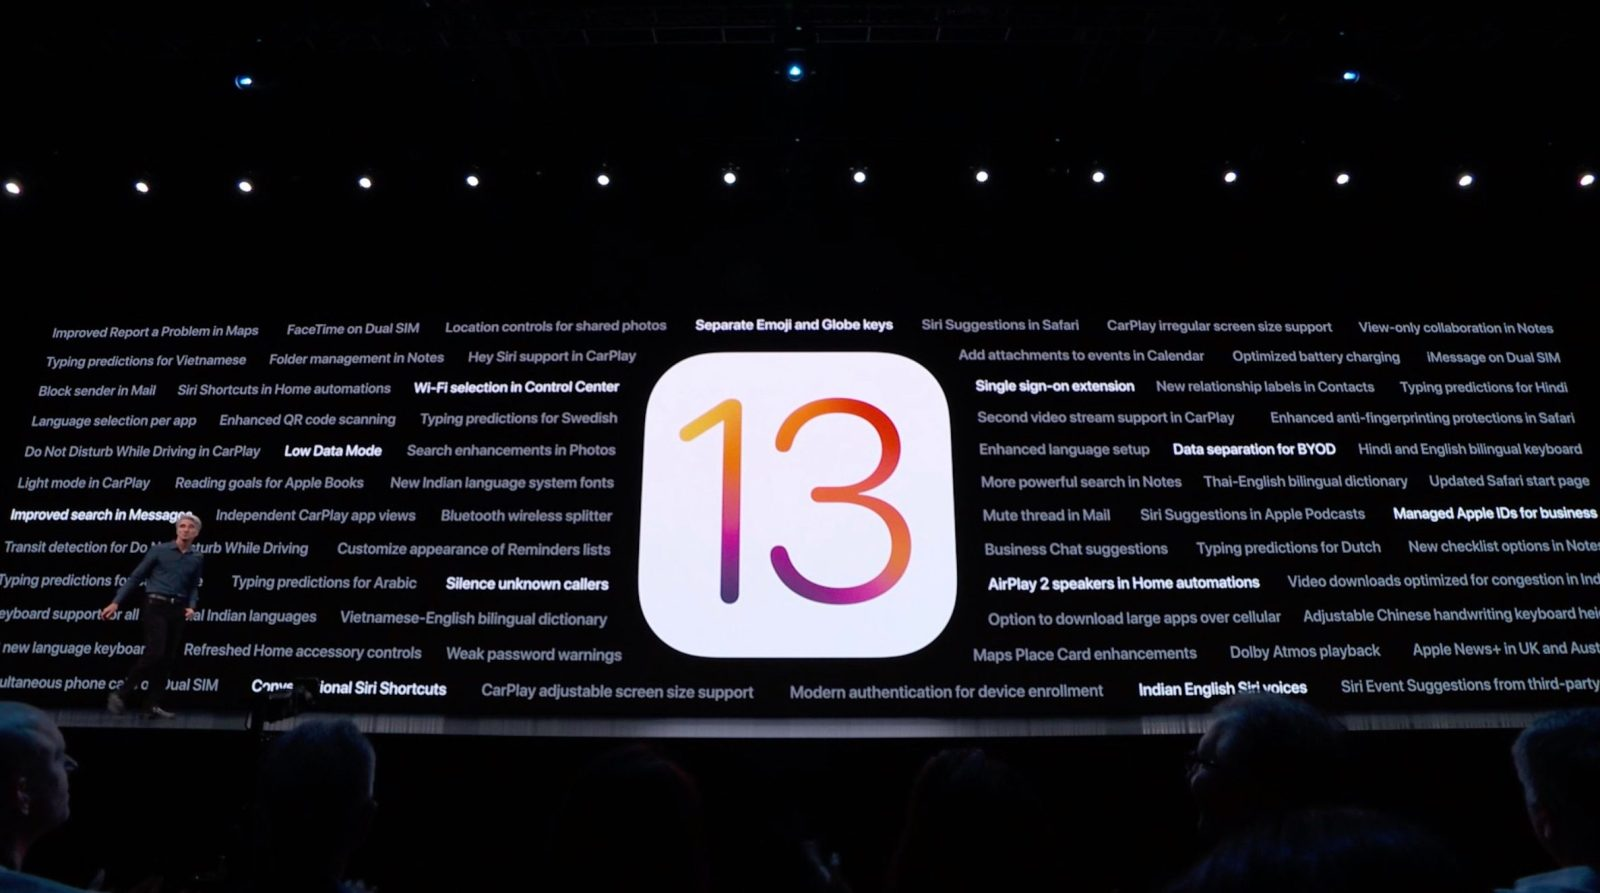 Apple AR Glasses reference discovered in iOS 13